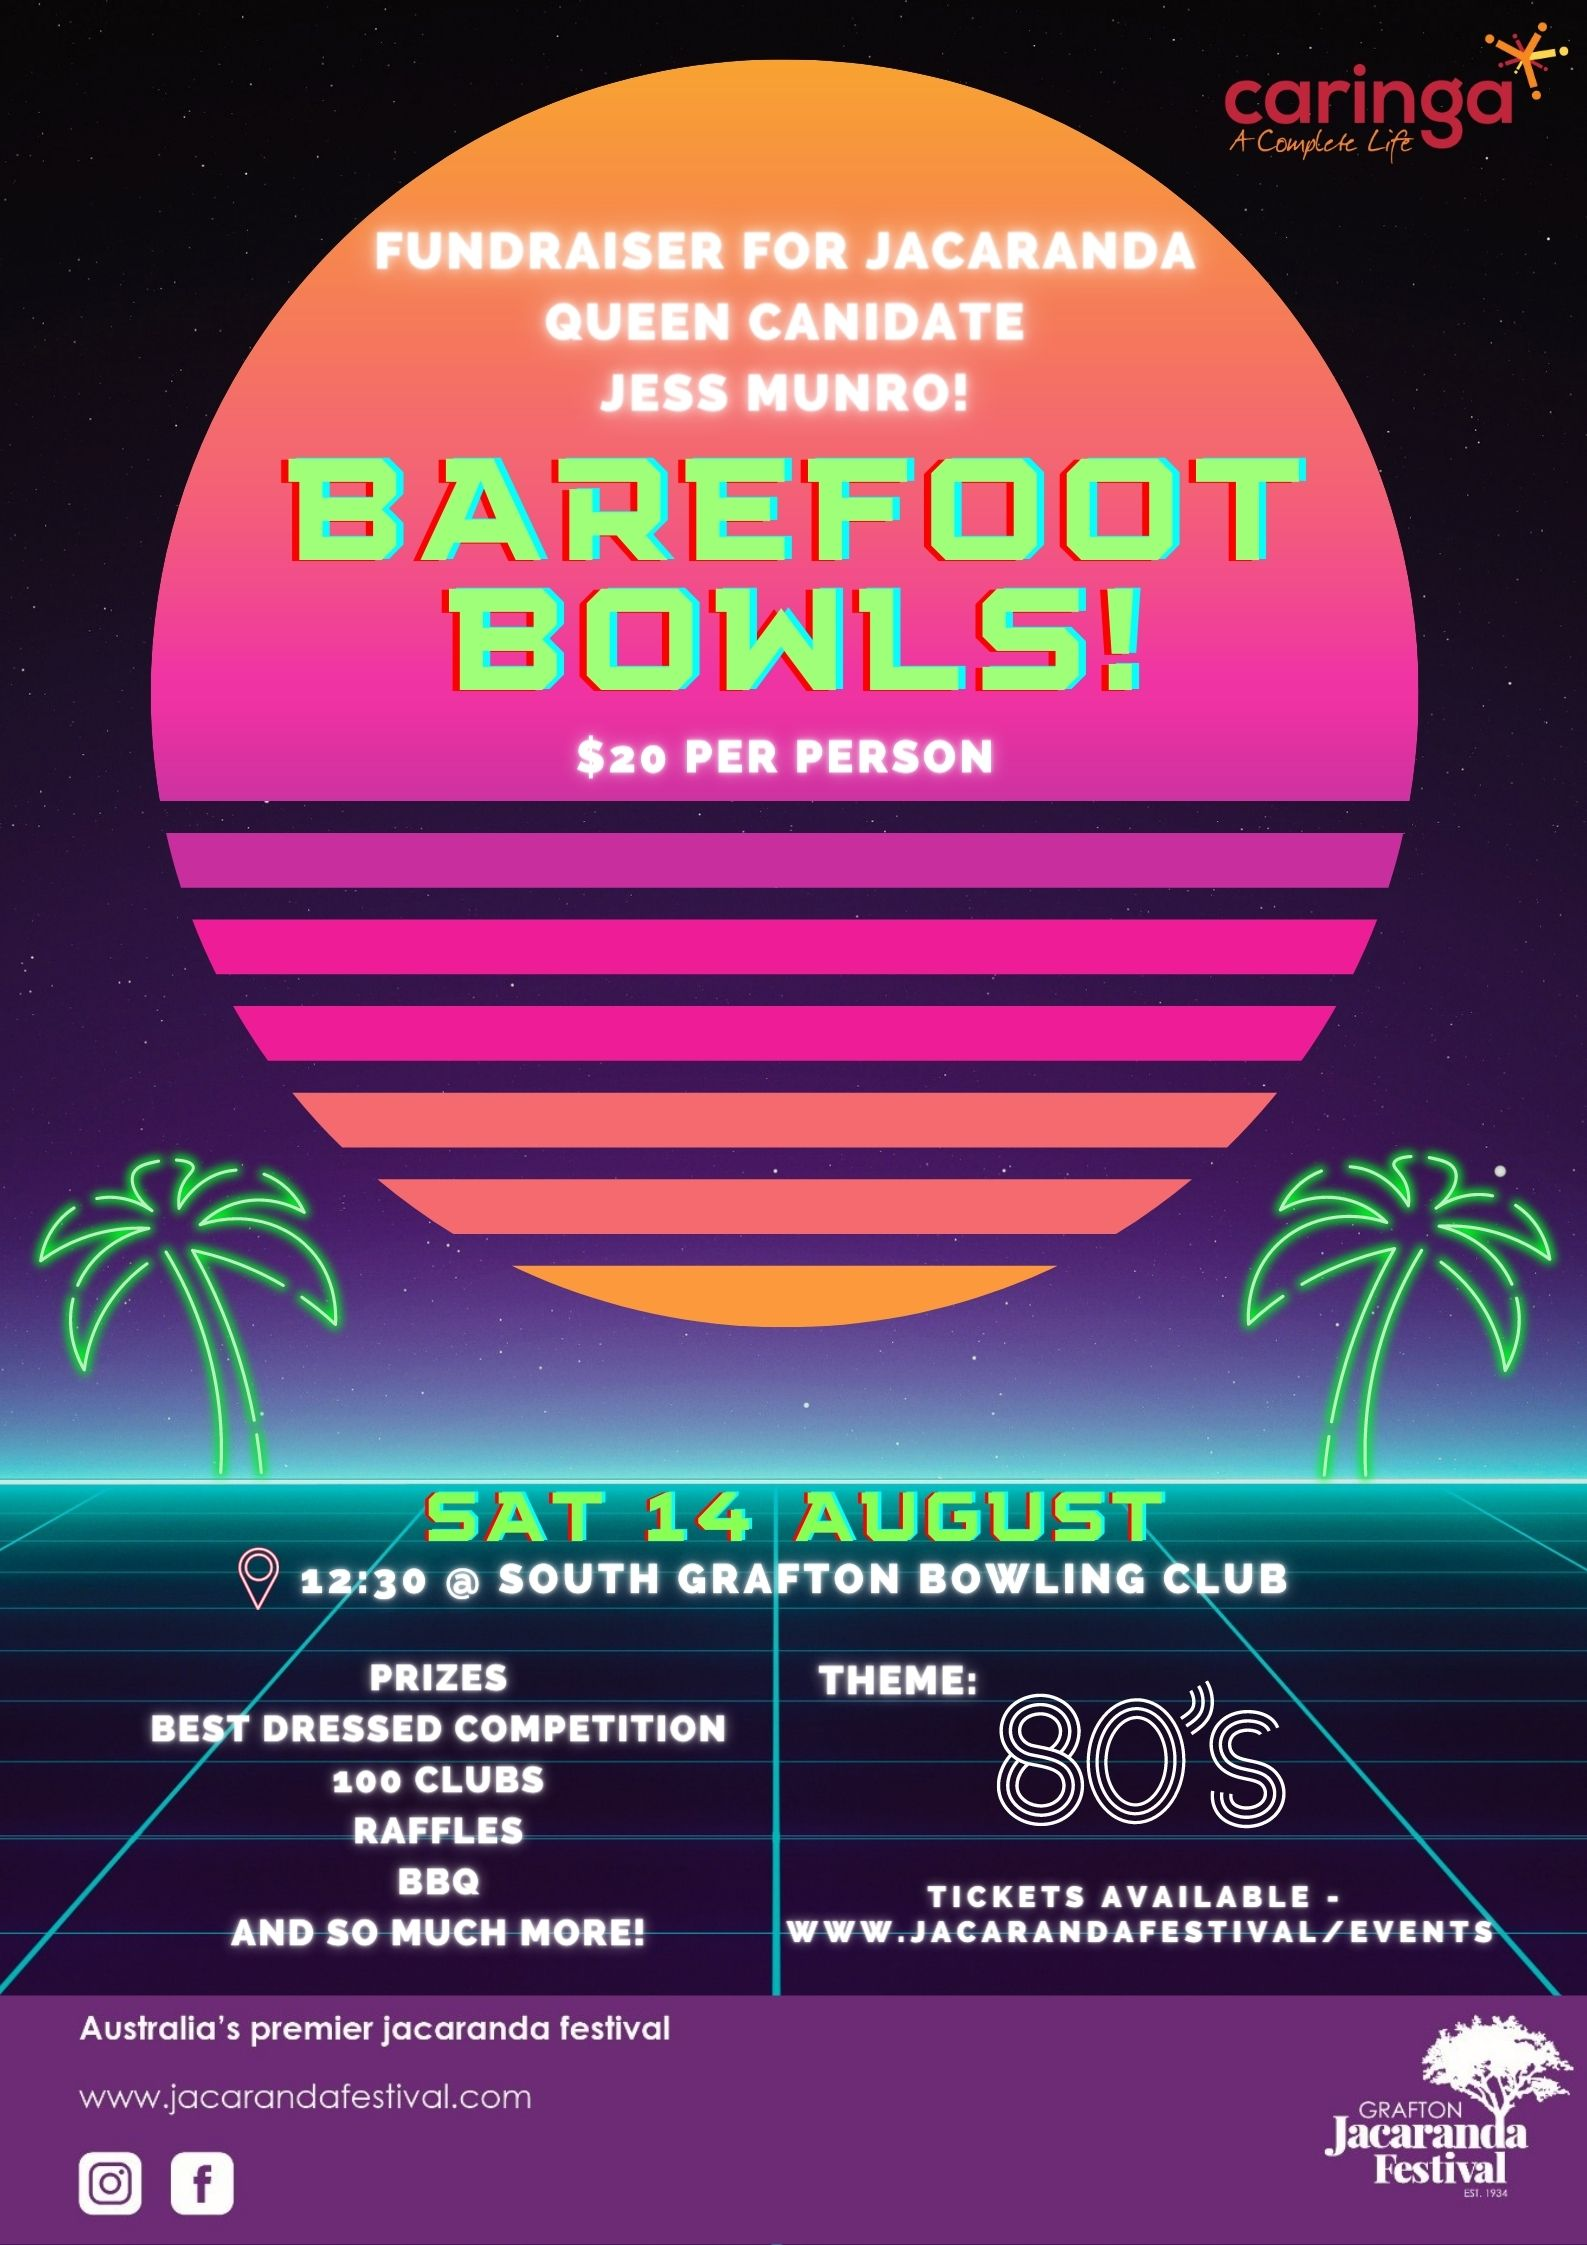 Jacaranda Queen Candidate Jess Munro's Fundraising Event – Barefoot Bowls!